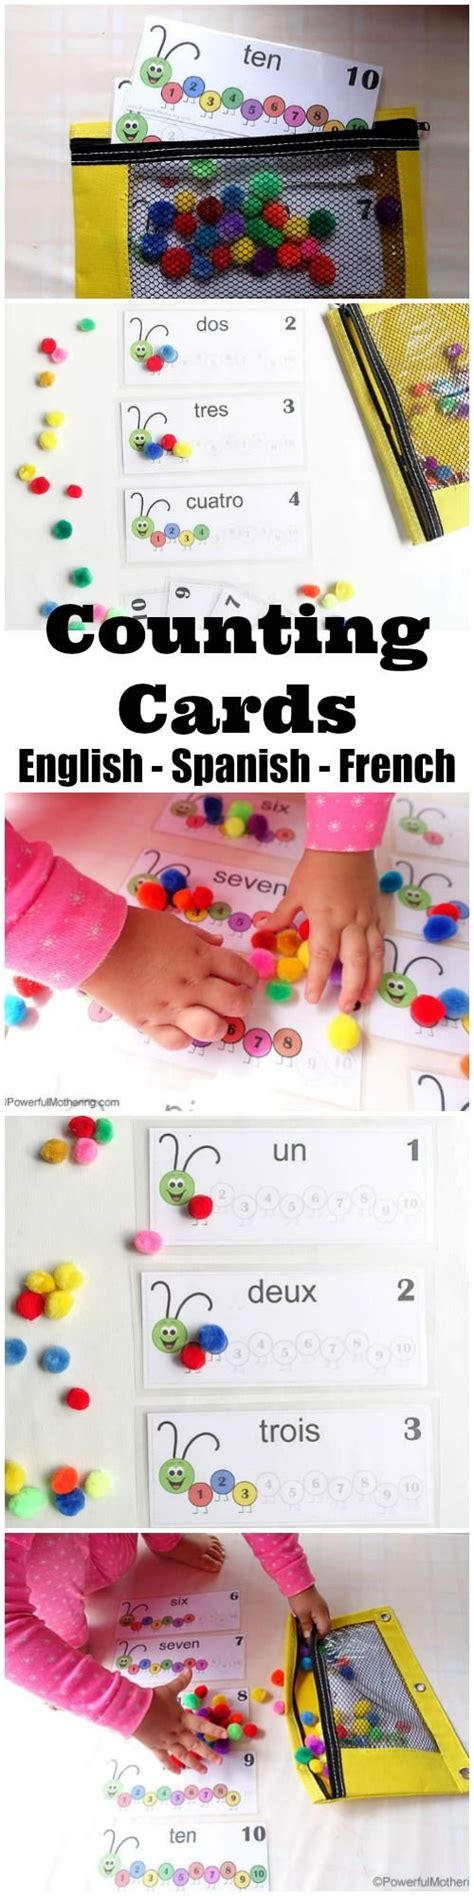 pattern recognition in french 175 best images about toddler 2 3 year olds on pinterest